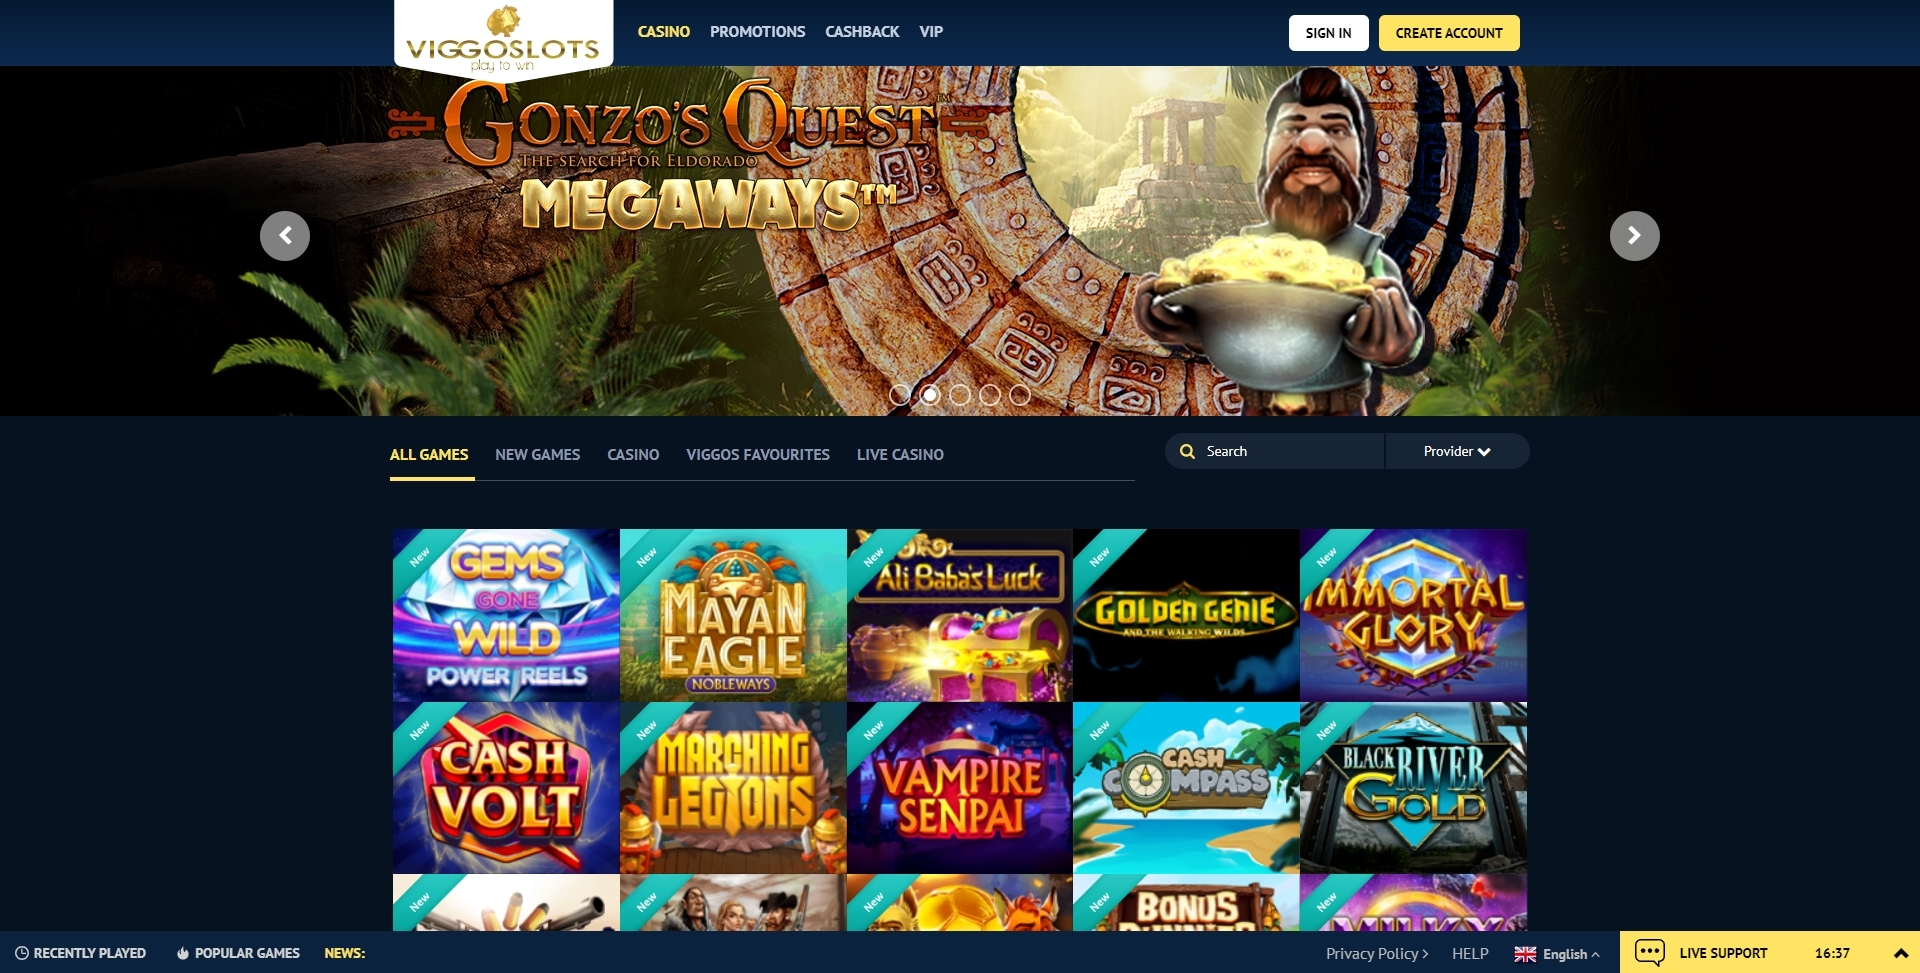 viggoslots casino homepage with bonus presentation and slots